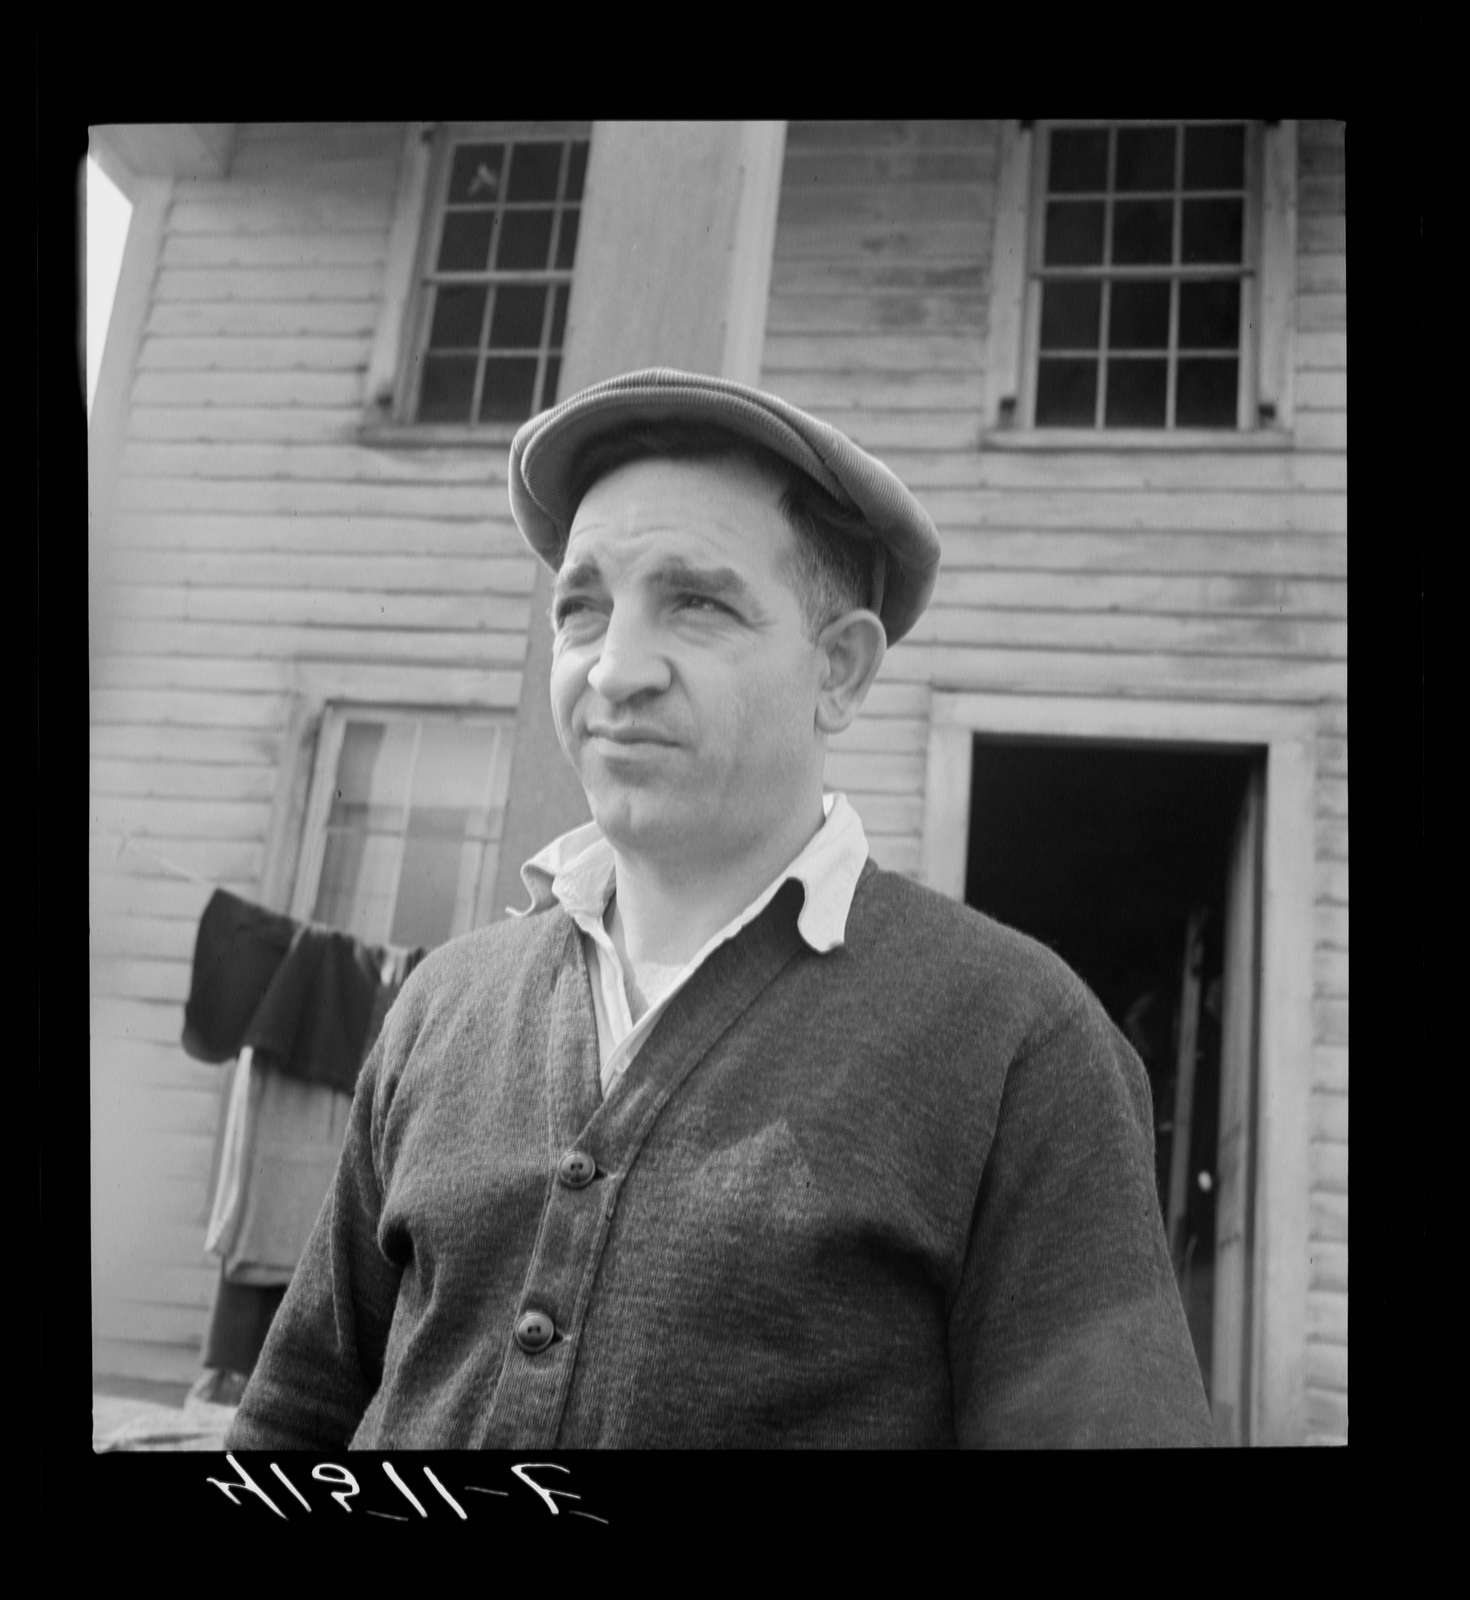 Mr. D'Annunzio, Italian farmer who has been living on submarginal area of Rumsey Hill for a year. He was an unemployed auto mechanic in the city. Near Erin, New York